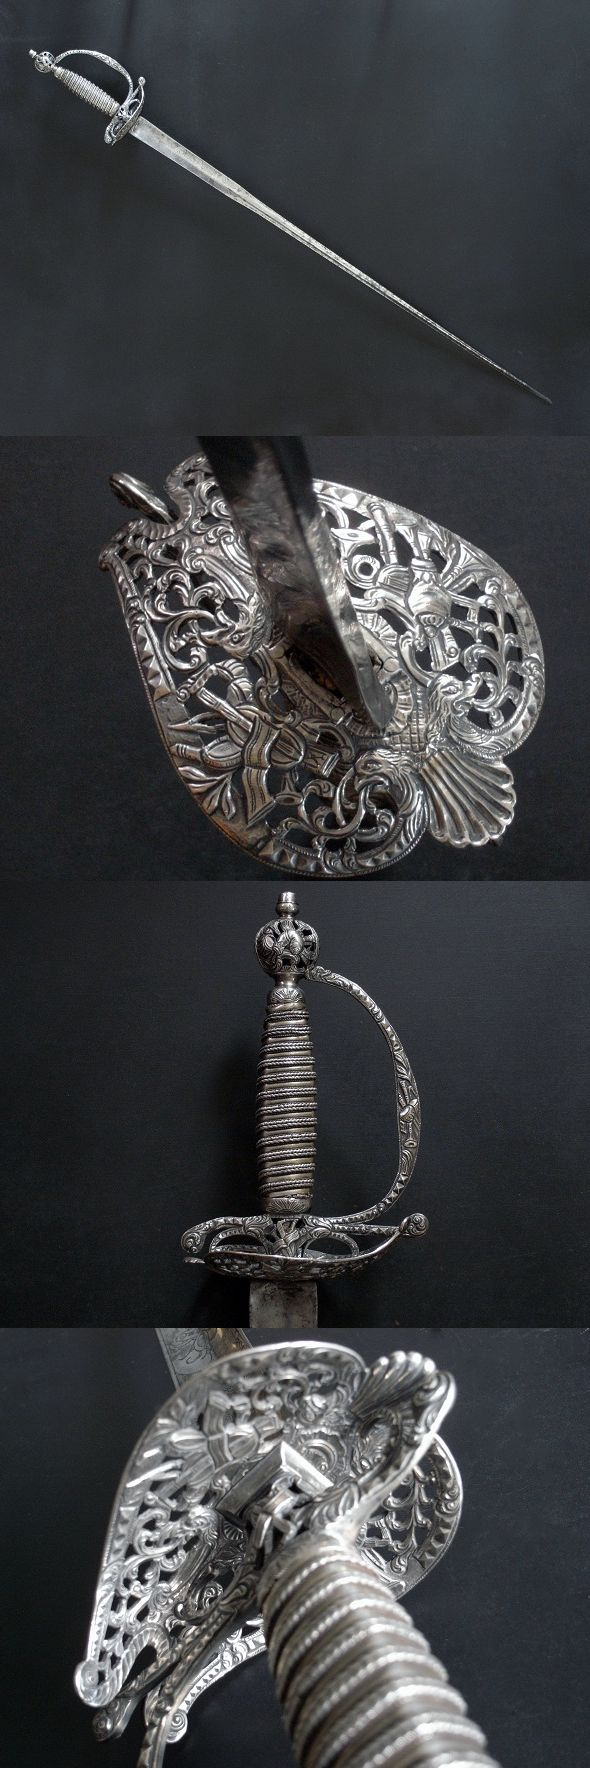 Must see.  Beautiful detail!  A remarkable 18th century English silver hilted small sword in good condition with hallmarks for London 1764/5. The maker is William Kinman, one of the foremost makers of silver hilted swords in London in the 18th century, and whose work represents the highest standards of English craftsmanship. https://darksword-armory.com/